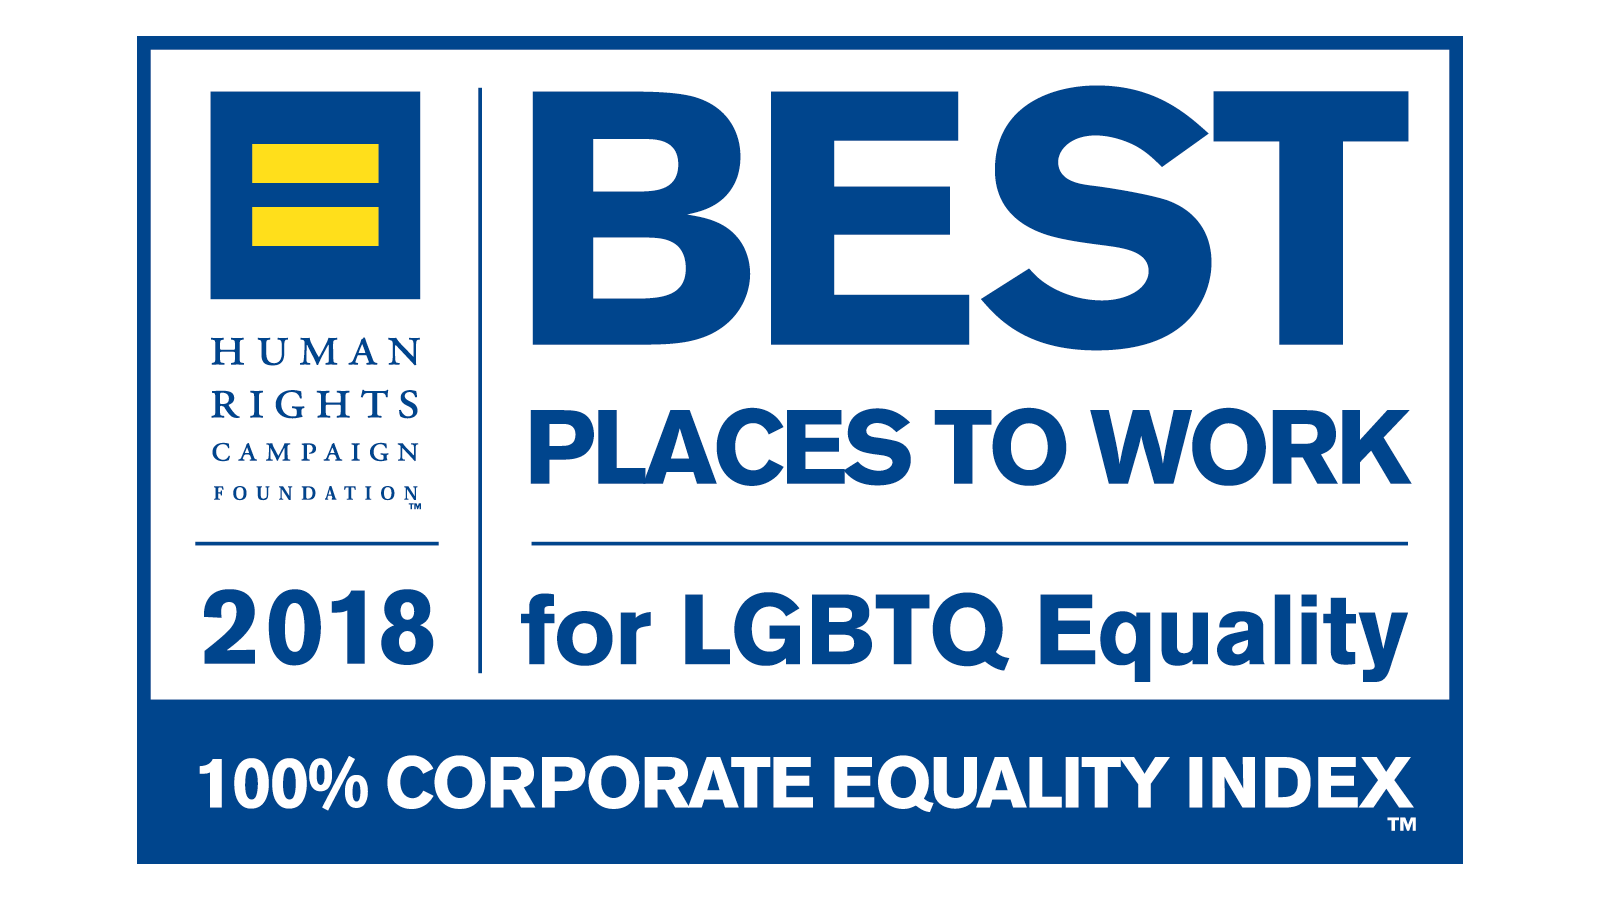 Perfect Score on Corporate Equality Index